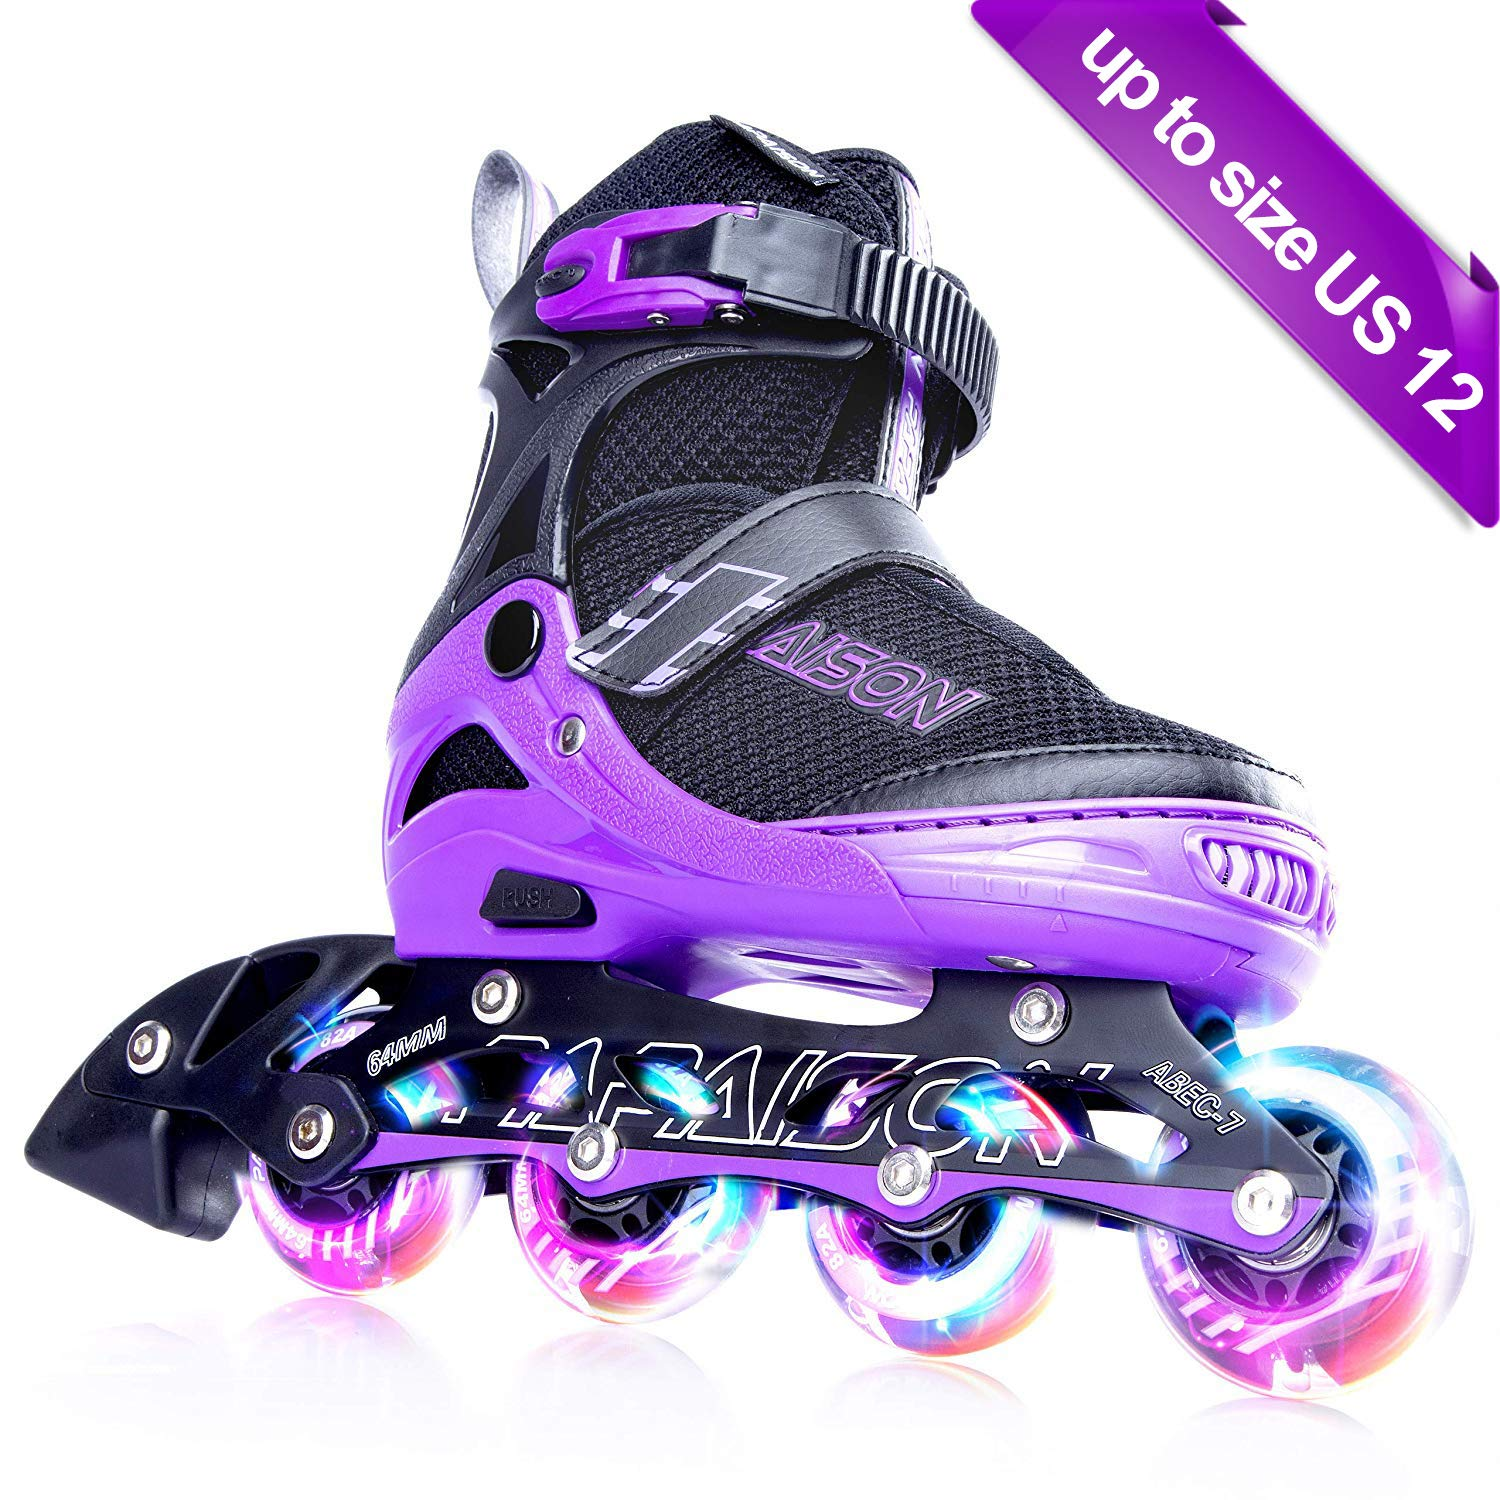 PAPAISON Adjustable Inline Skates for Kids and Adults with Full Light Up LED Wheels